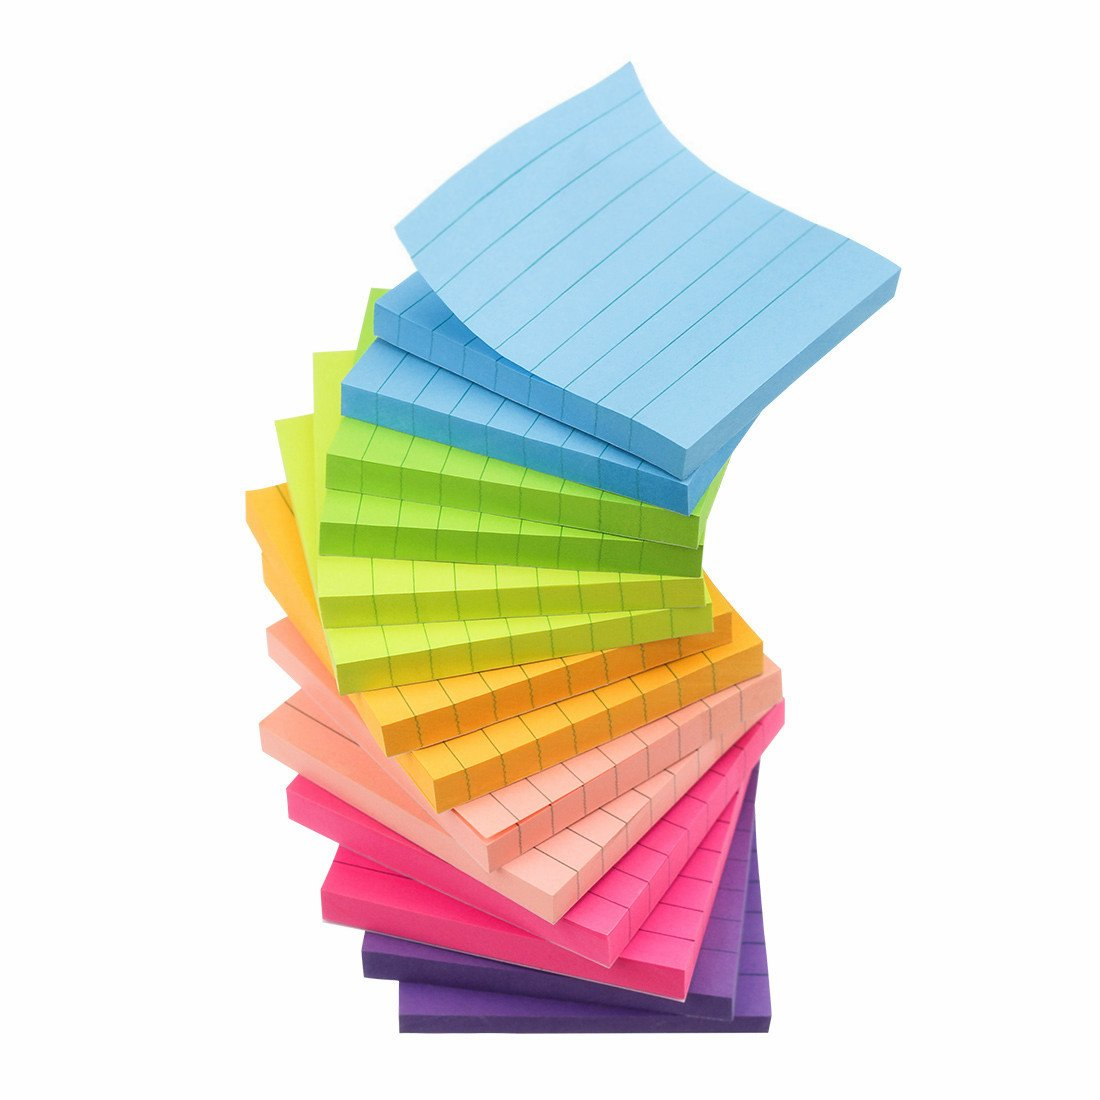 Early Buy 7 Bright Color Lined Sticky Notes Self-Stick Notes 3 in x 3 in, 80 Sheets/Pad, 14 Pads/Pack by Early Buy